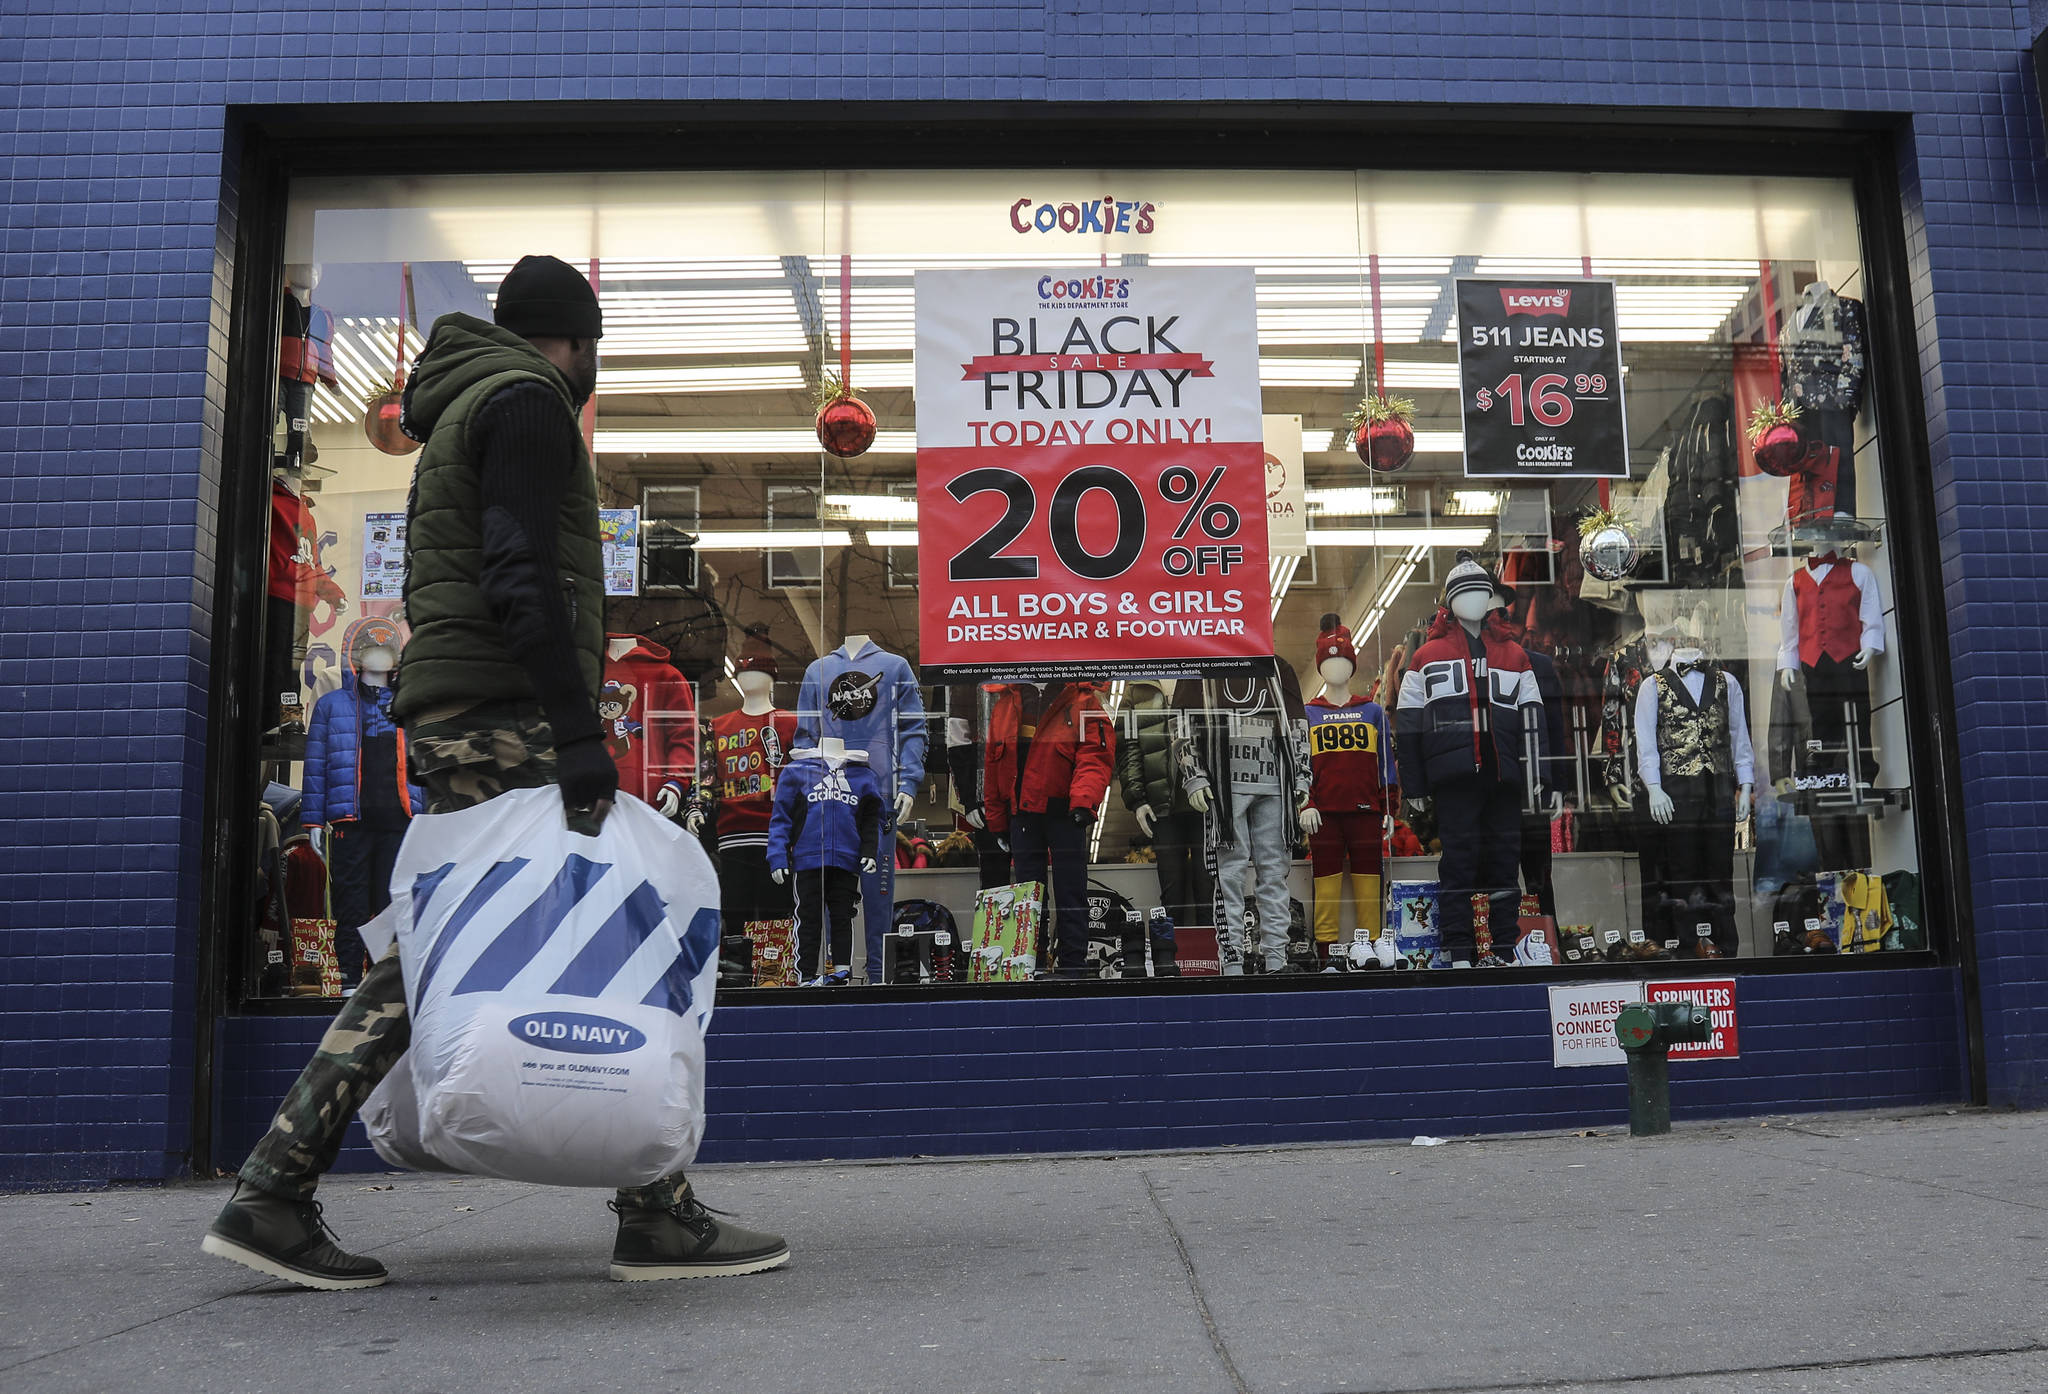 FILE - In this Nov. 29, 2019, file photo people walk by a Black Friday promotional at Cookie's department store in the Brooklyn Borough of New York. Shopping at sales and using coupons may not be saving you as much money as you think. Knowing the pitfalls and having a plan can help keep your holiday shopping from coming back to bite you in January. (AP Photo/Bebeto Matthews, File)